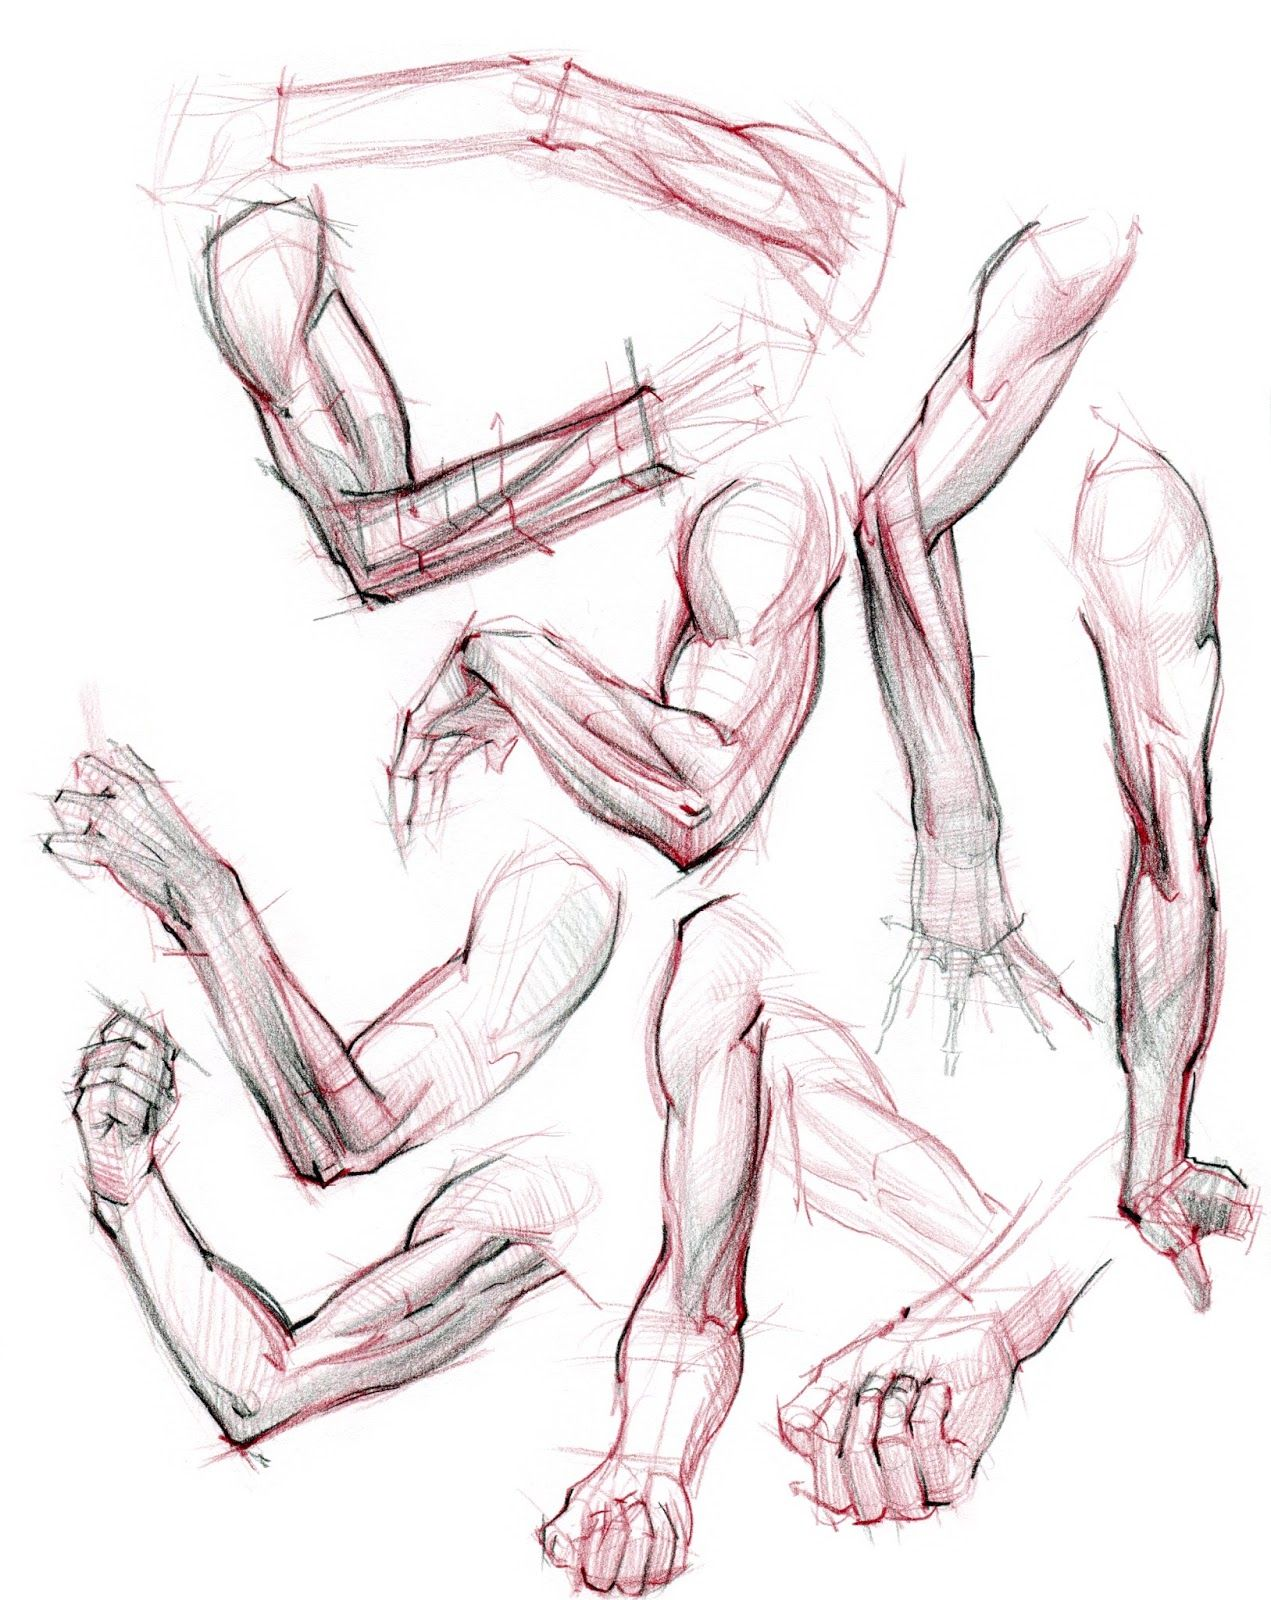 figuredrawing.info_news: Hand/Arm lecture images | REF: Anatomy ...